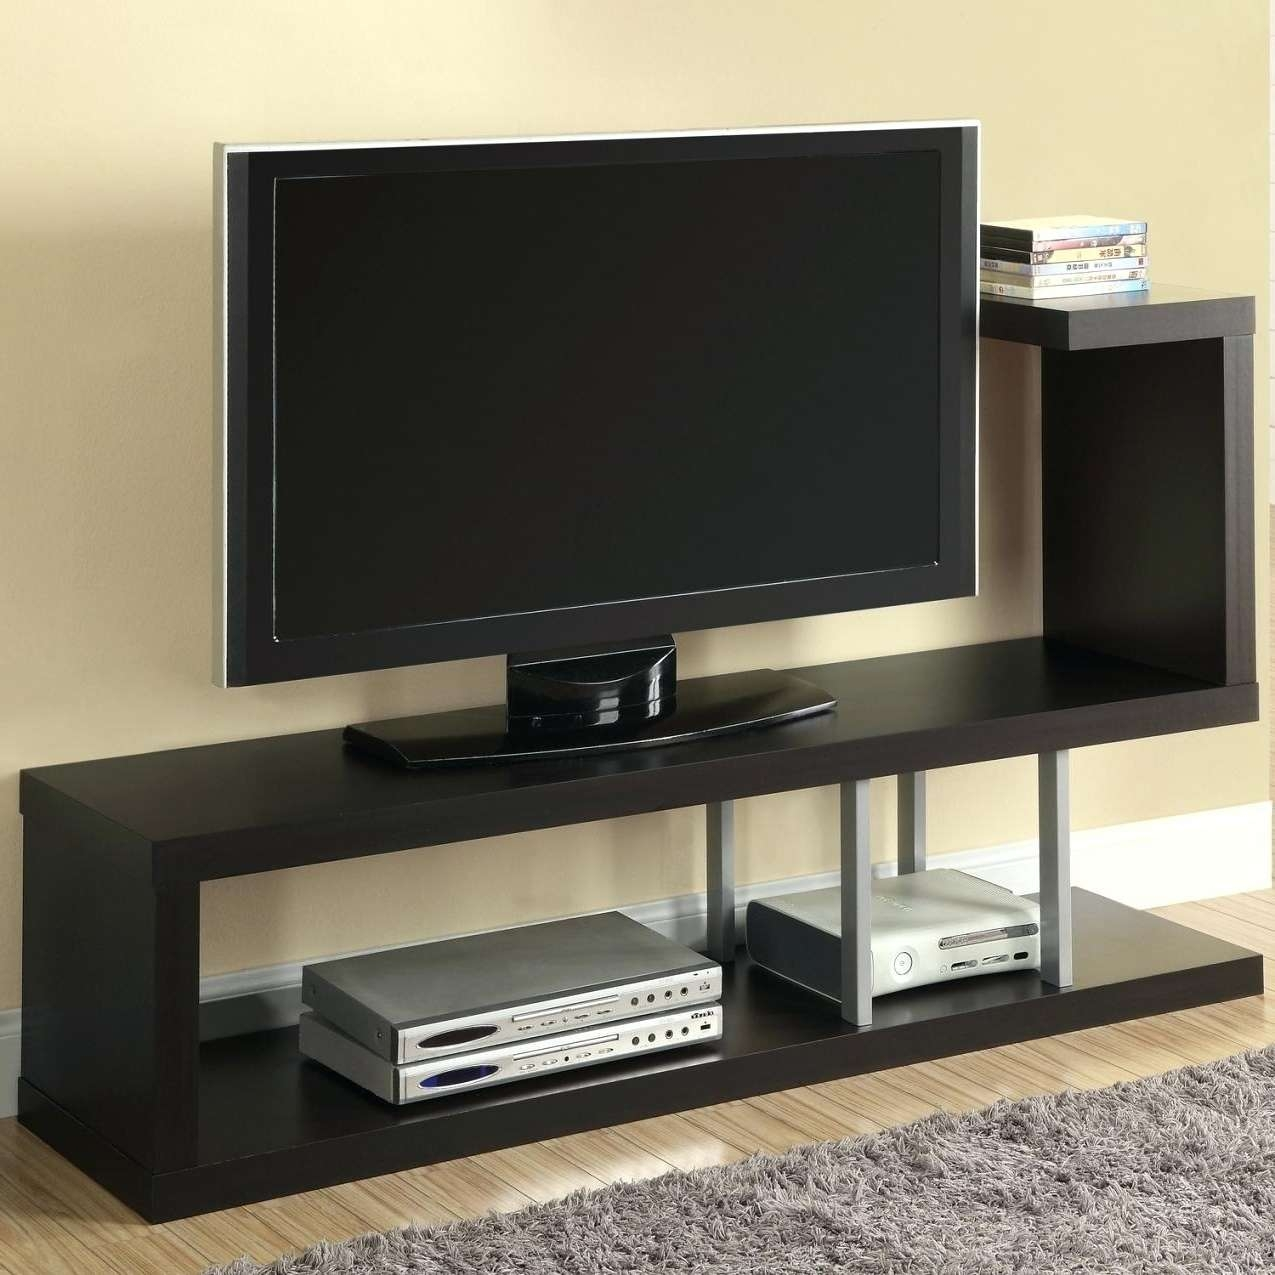 Tv Stand: Unique Tv Stand Ideas. Unique Tv Stands Ideas (View 3 of 15)